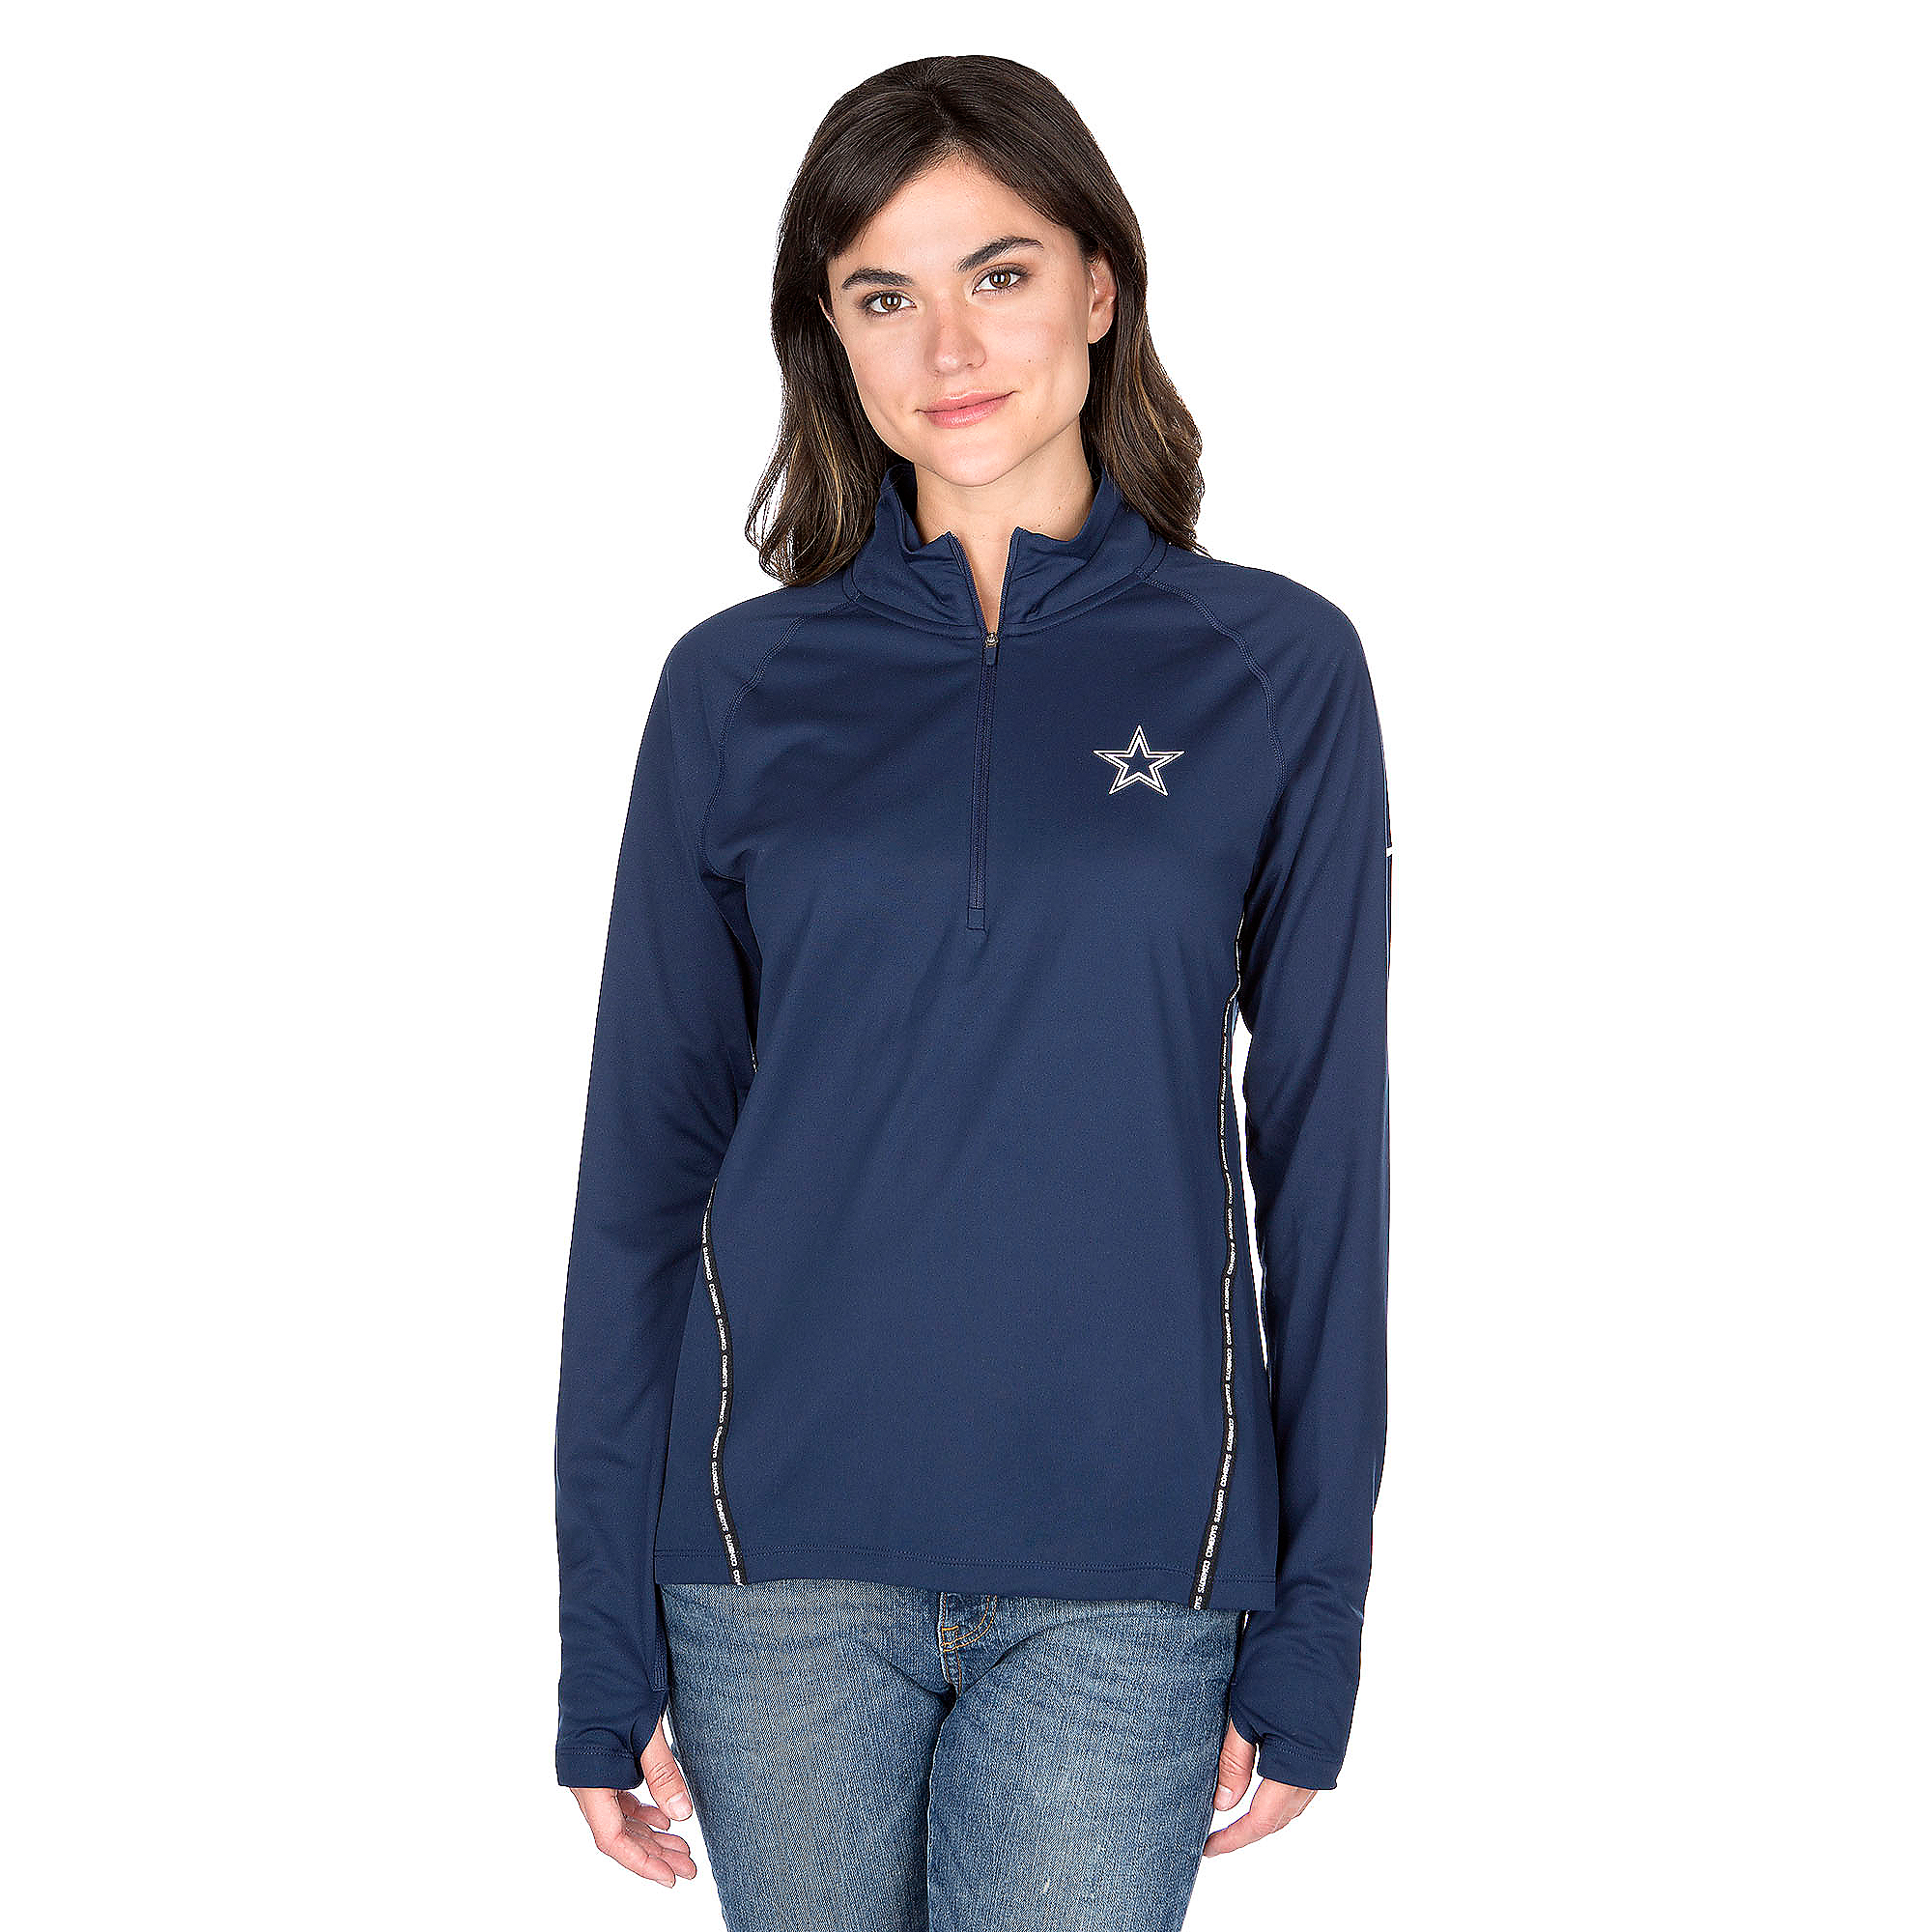 Dallas Cowboys Nike Core Half Zip Top